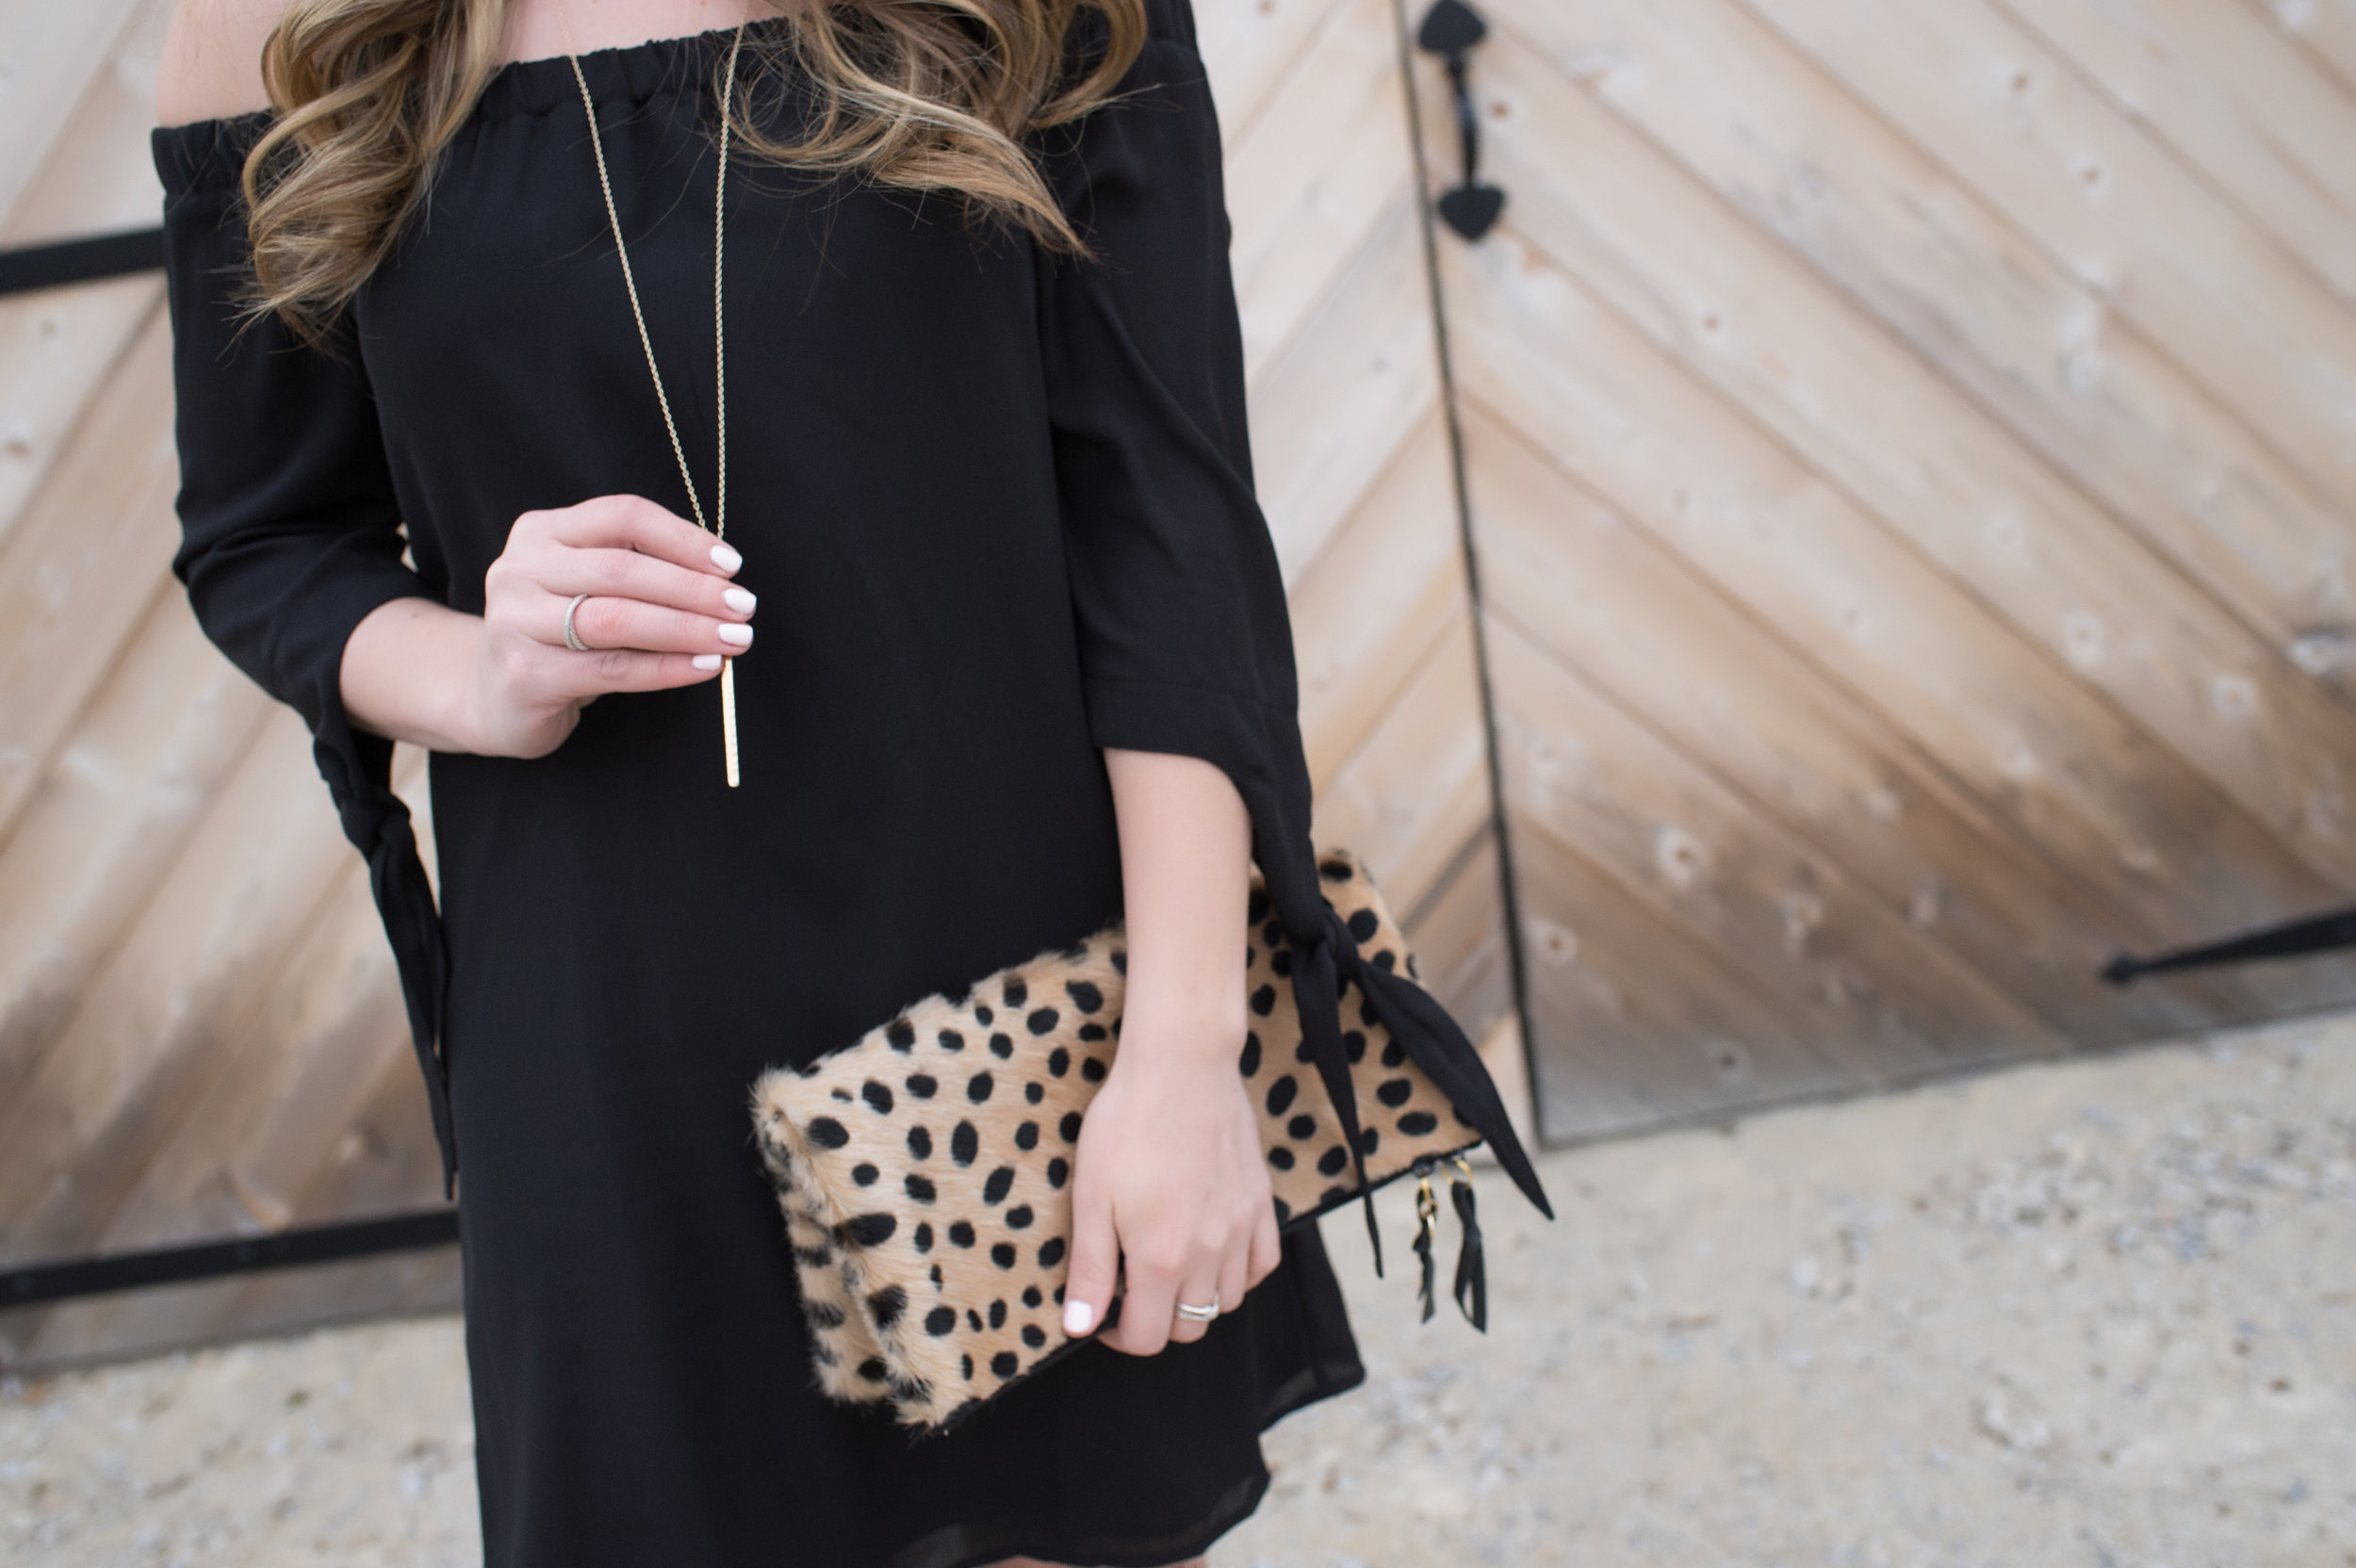 outfit details / gold necklace + cheetah clutch